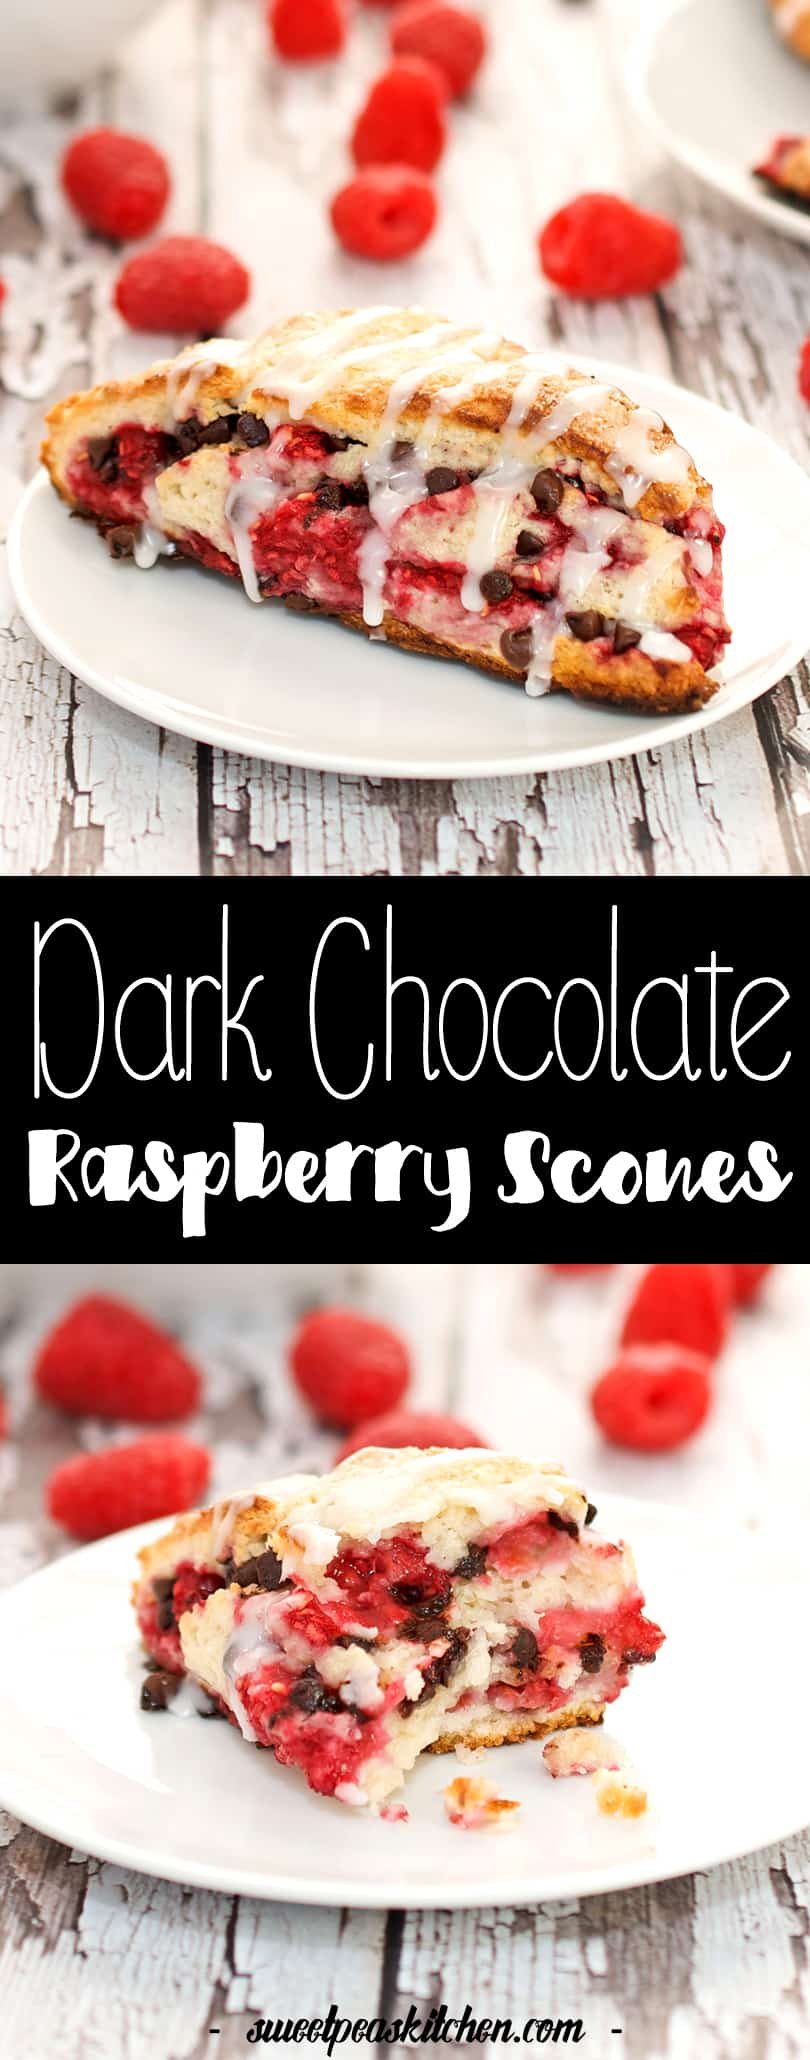 Dark Chocolate Raspberry Scones